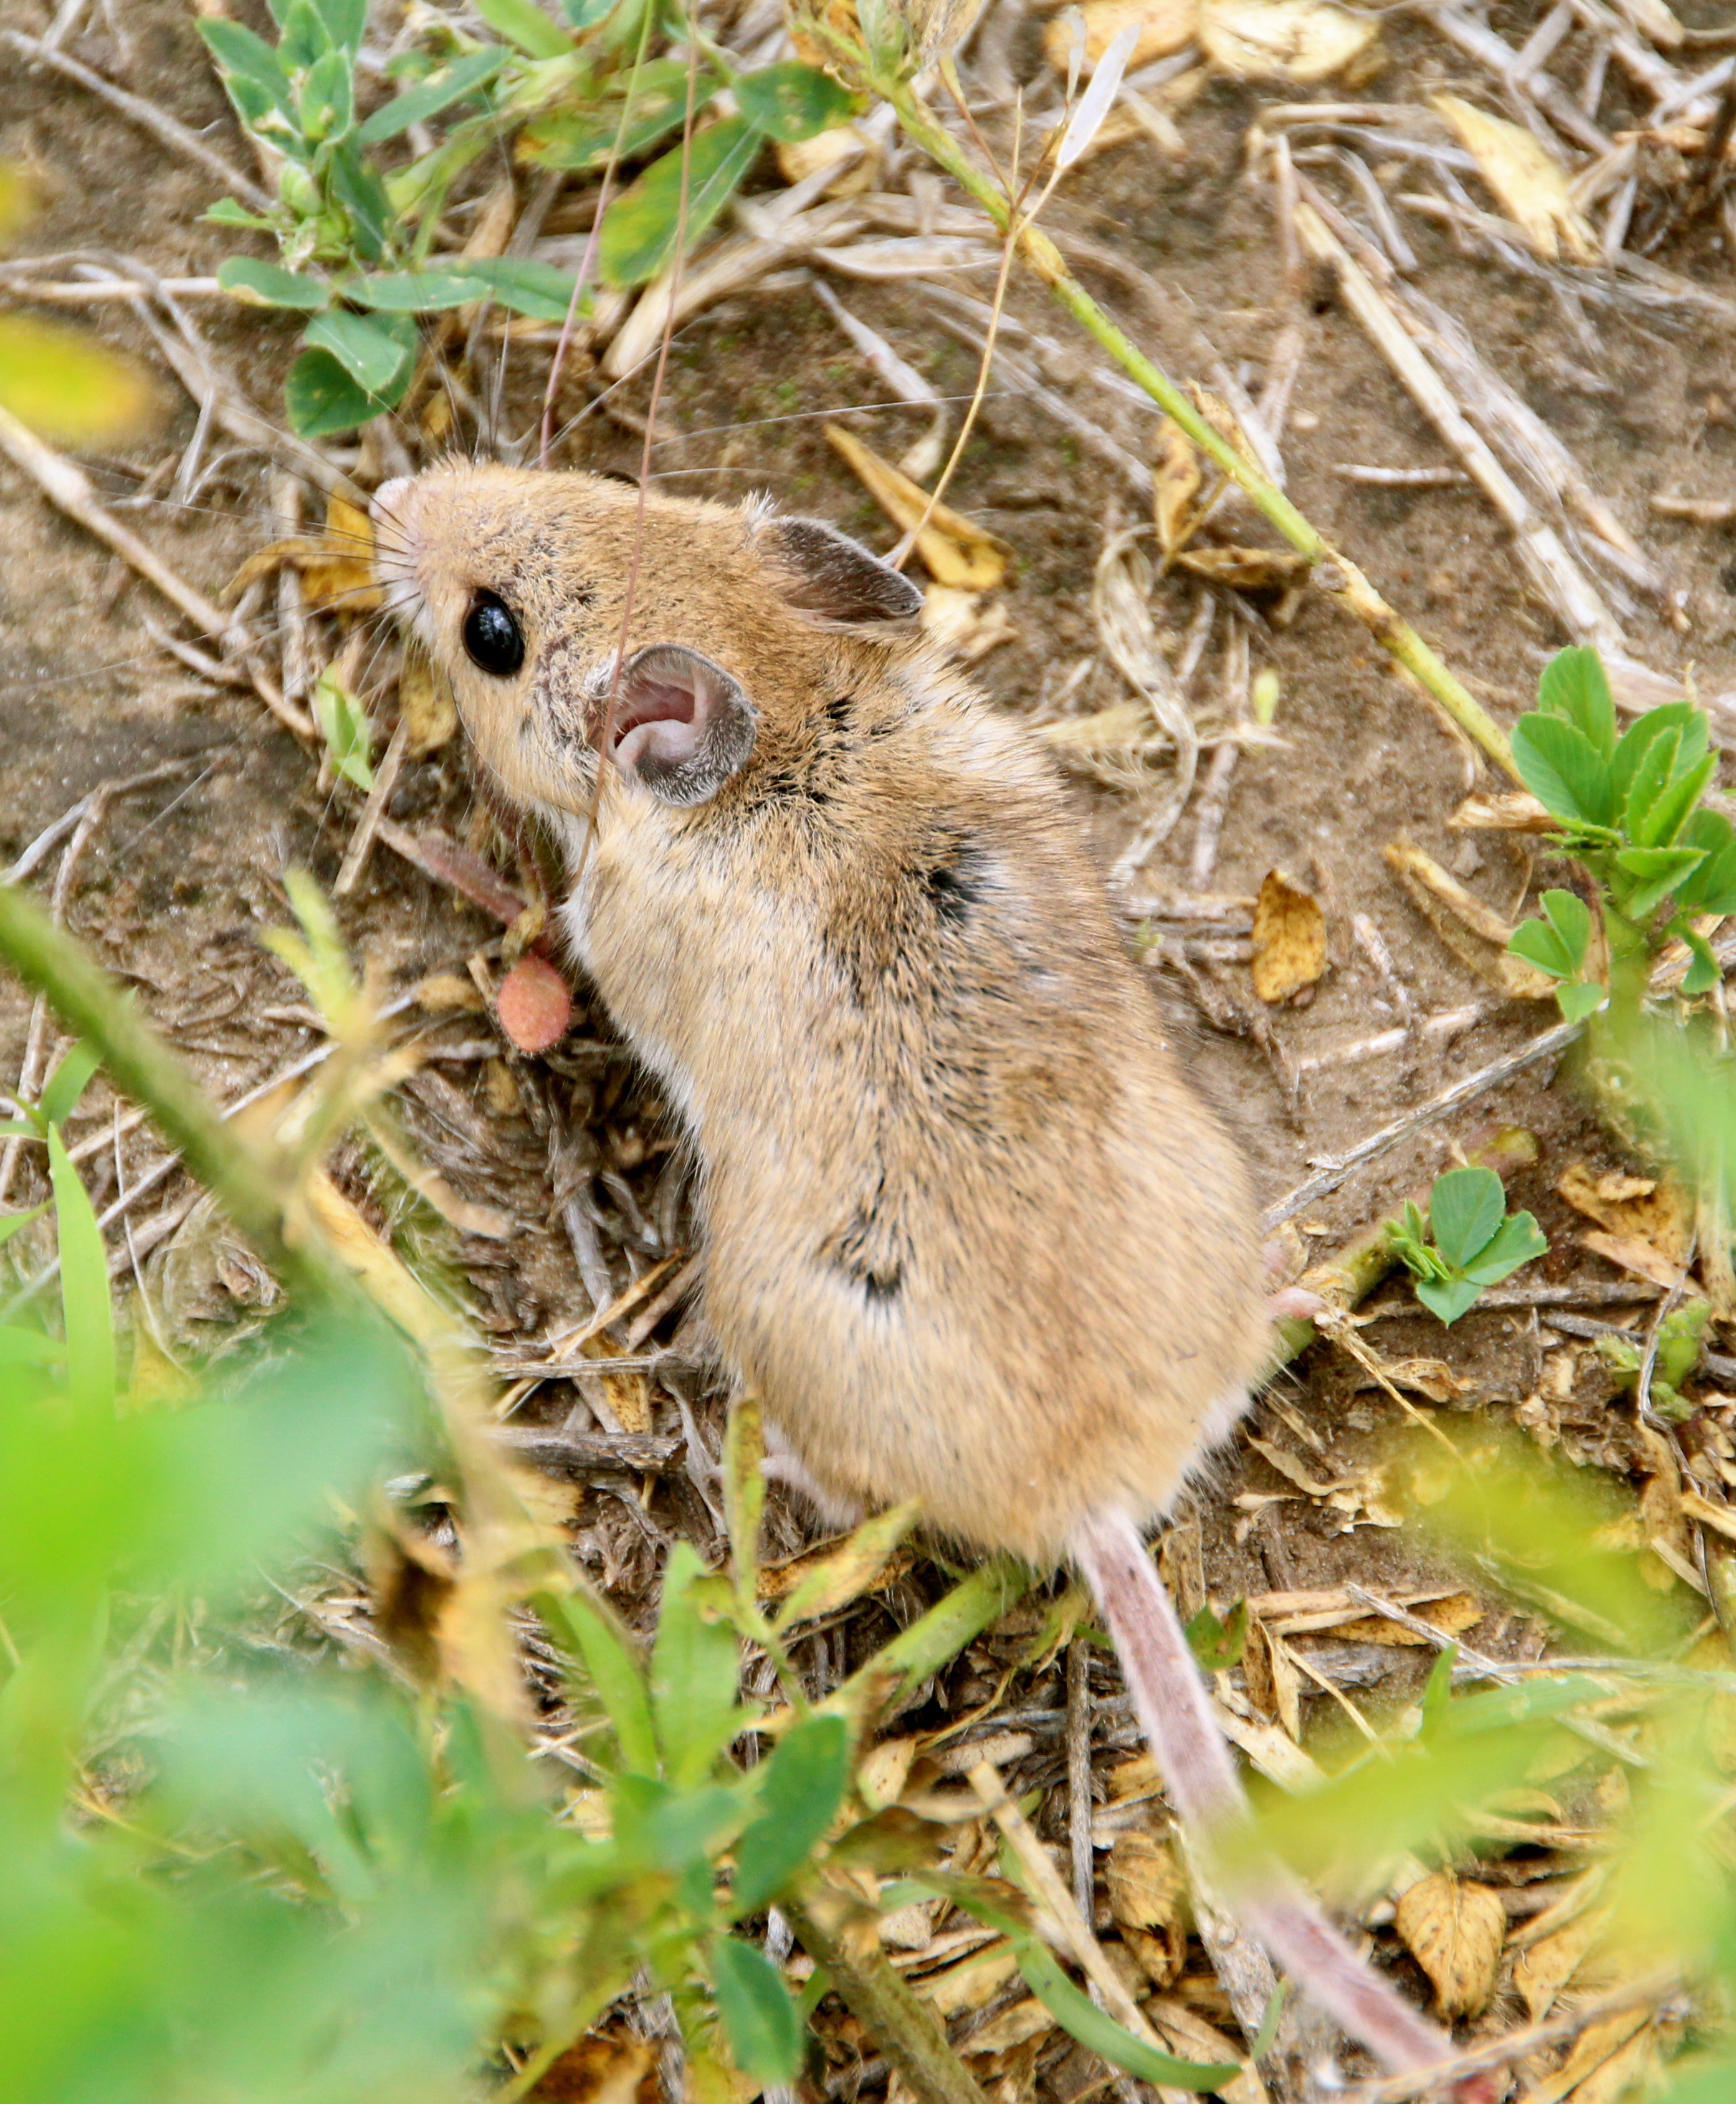 A light brown mouse is observed from above, surrounded by rough grass.